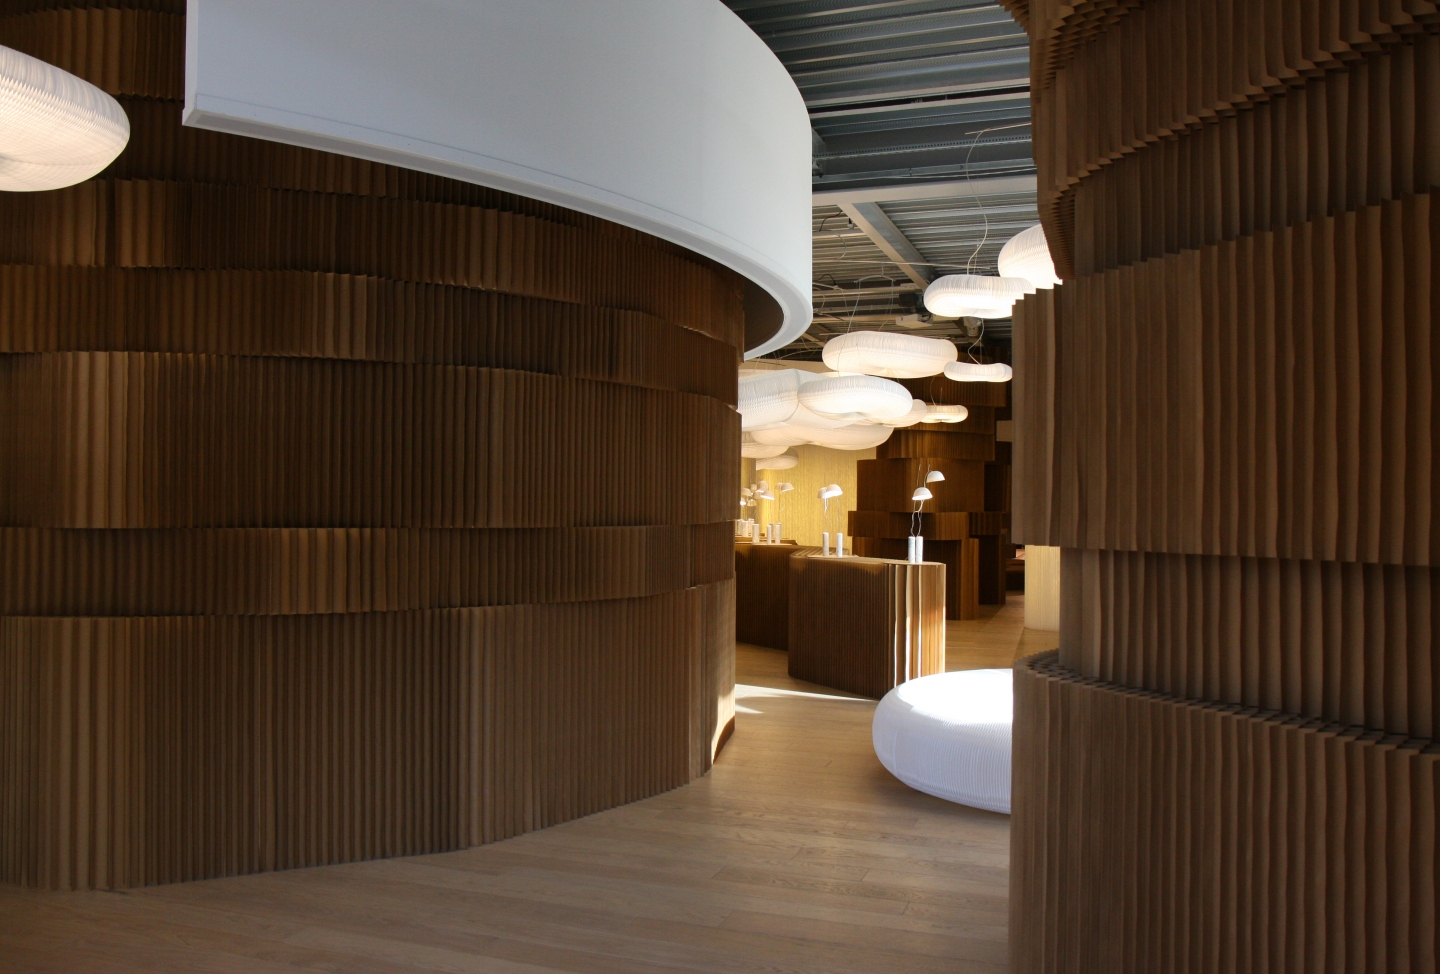 paper room dividers / modular partitions by molo